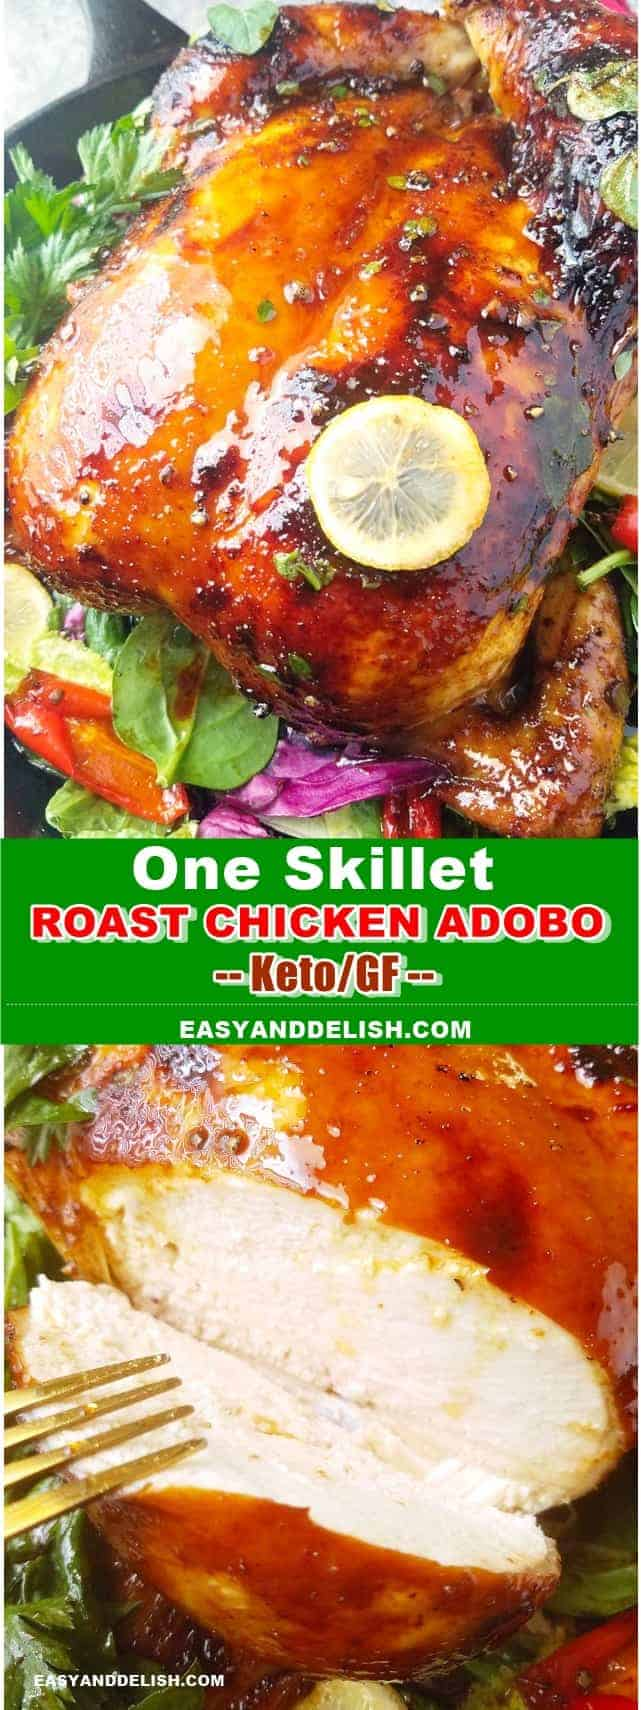 two close up images showing whole and sliced roast chicken adobo